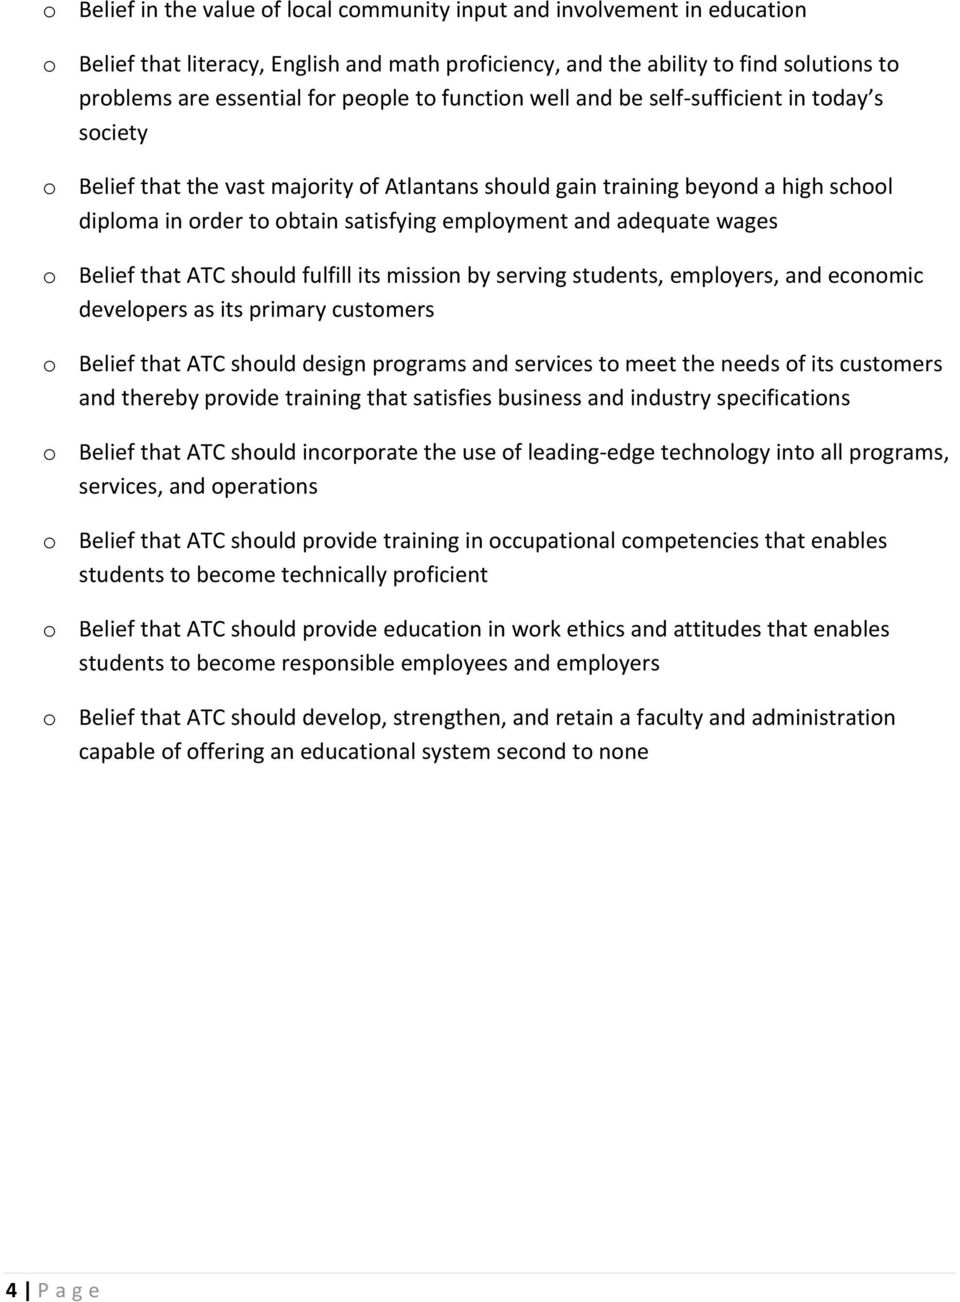 employment and adequate wages o Belief that ATC should fulfill its mission by serving students, employers, and economic developers as its primary customers o Belief that ATC should design programs